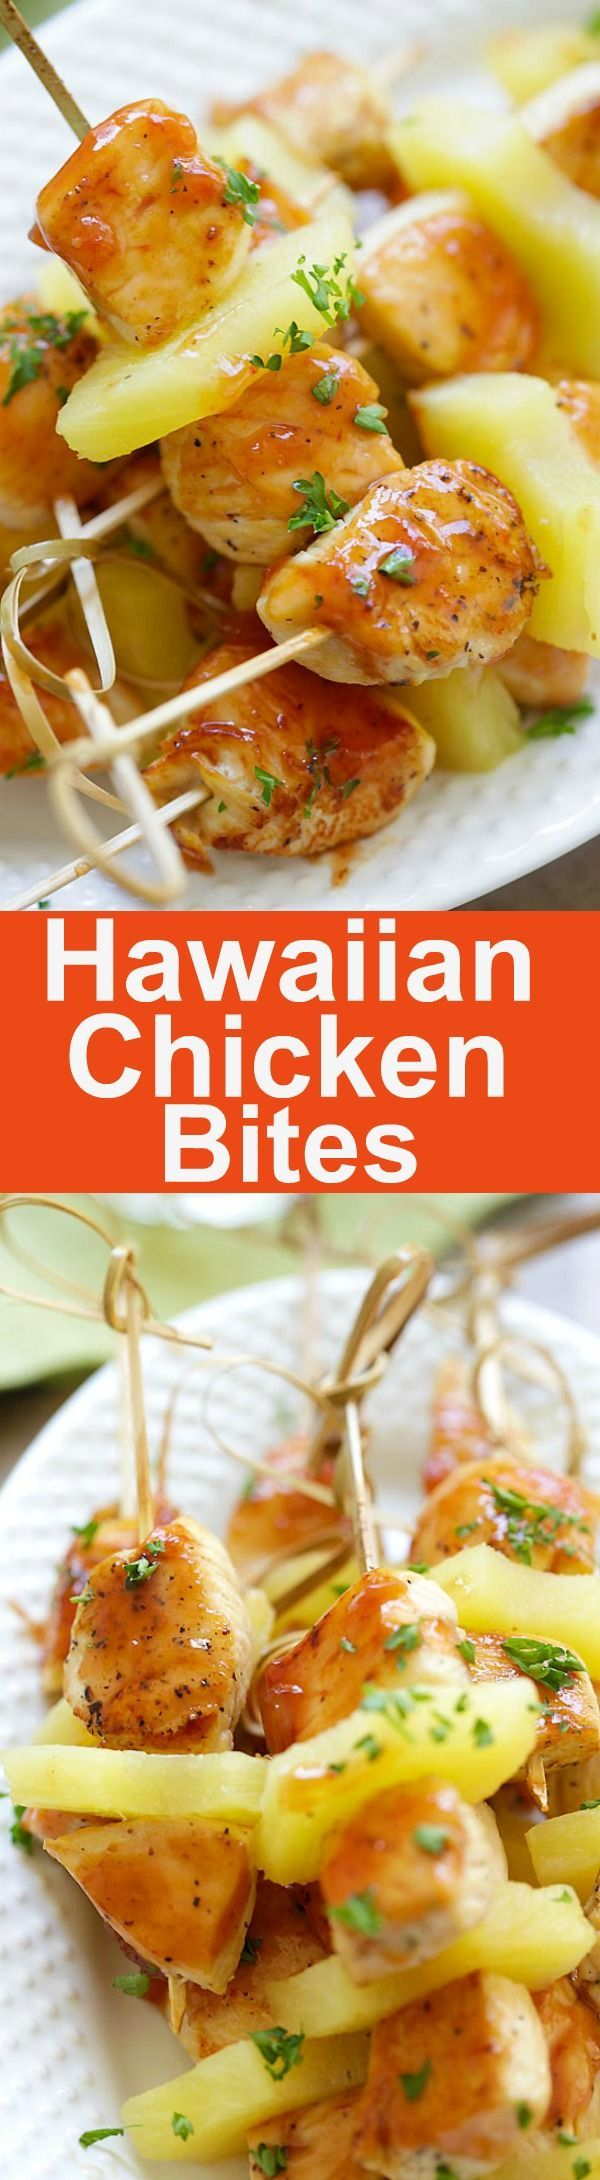 Hawaiian Chicken Bites – amazing chicken skewers with pineapple with Hawaiian BBQ sauce. This recipe is so easy and a crowd pleaser.